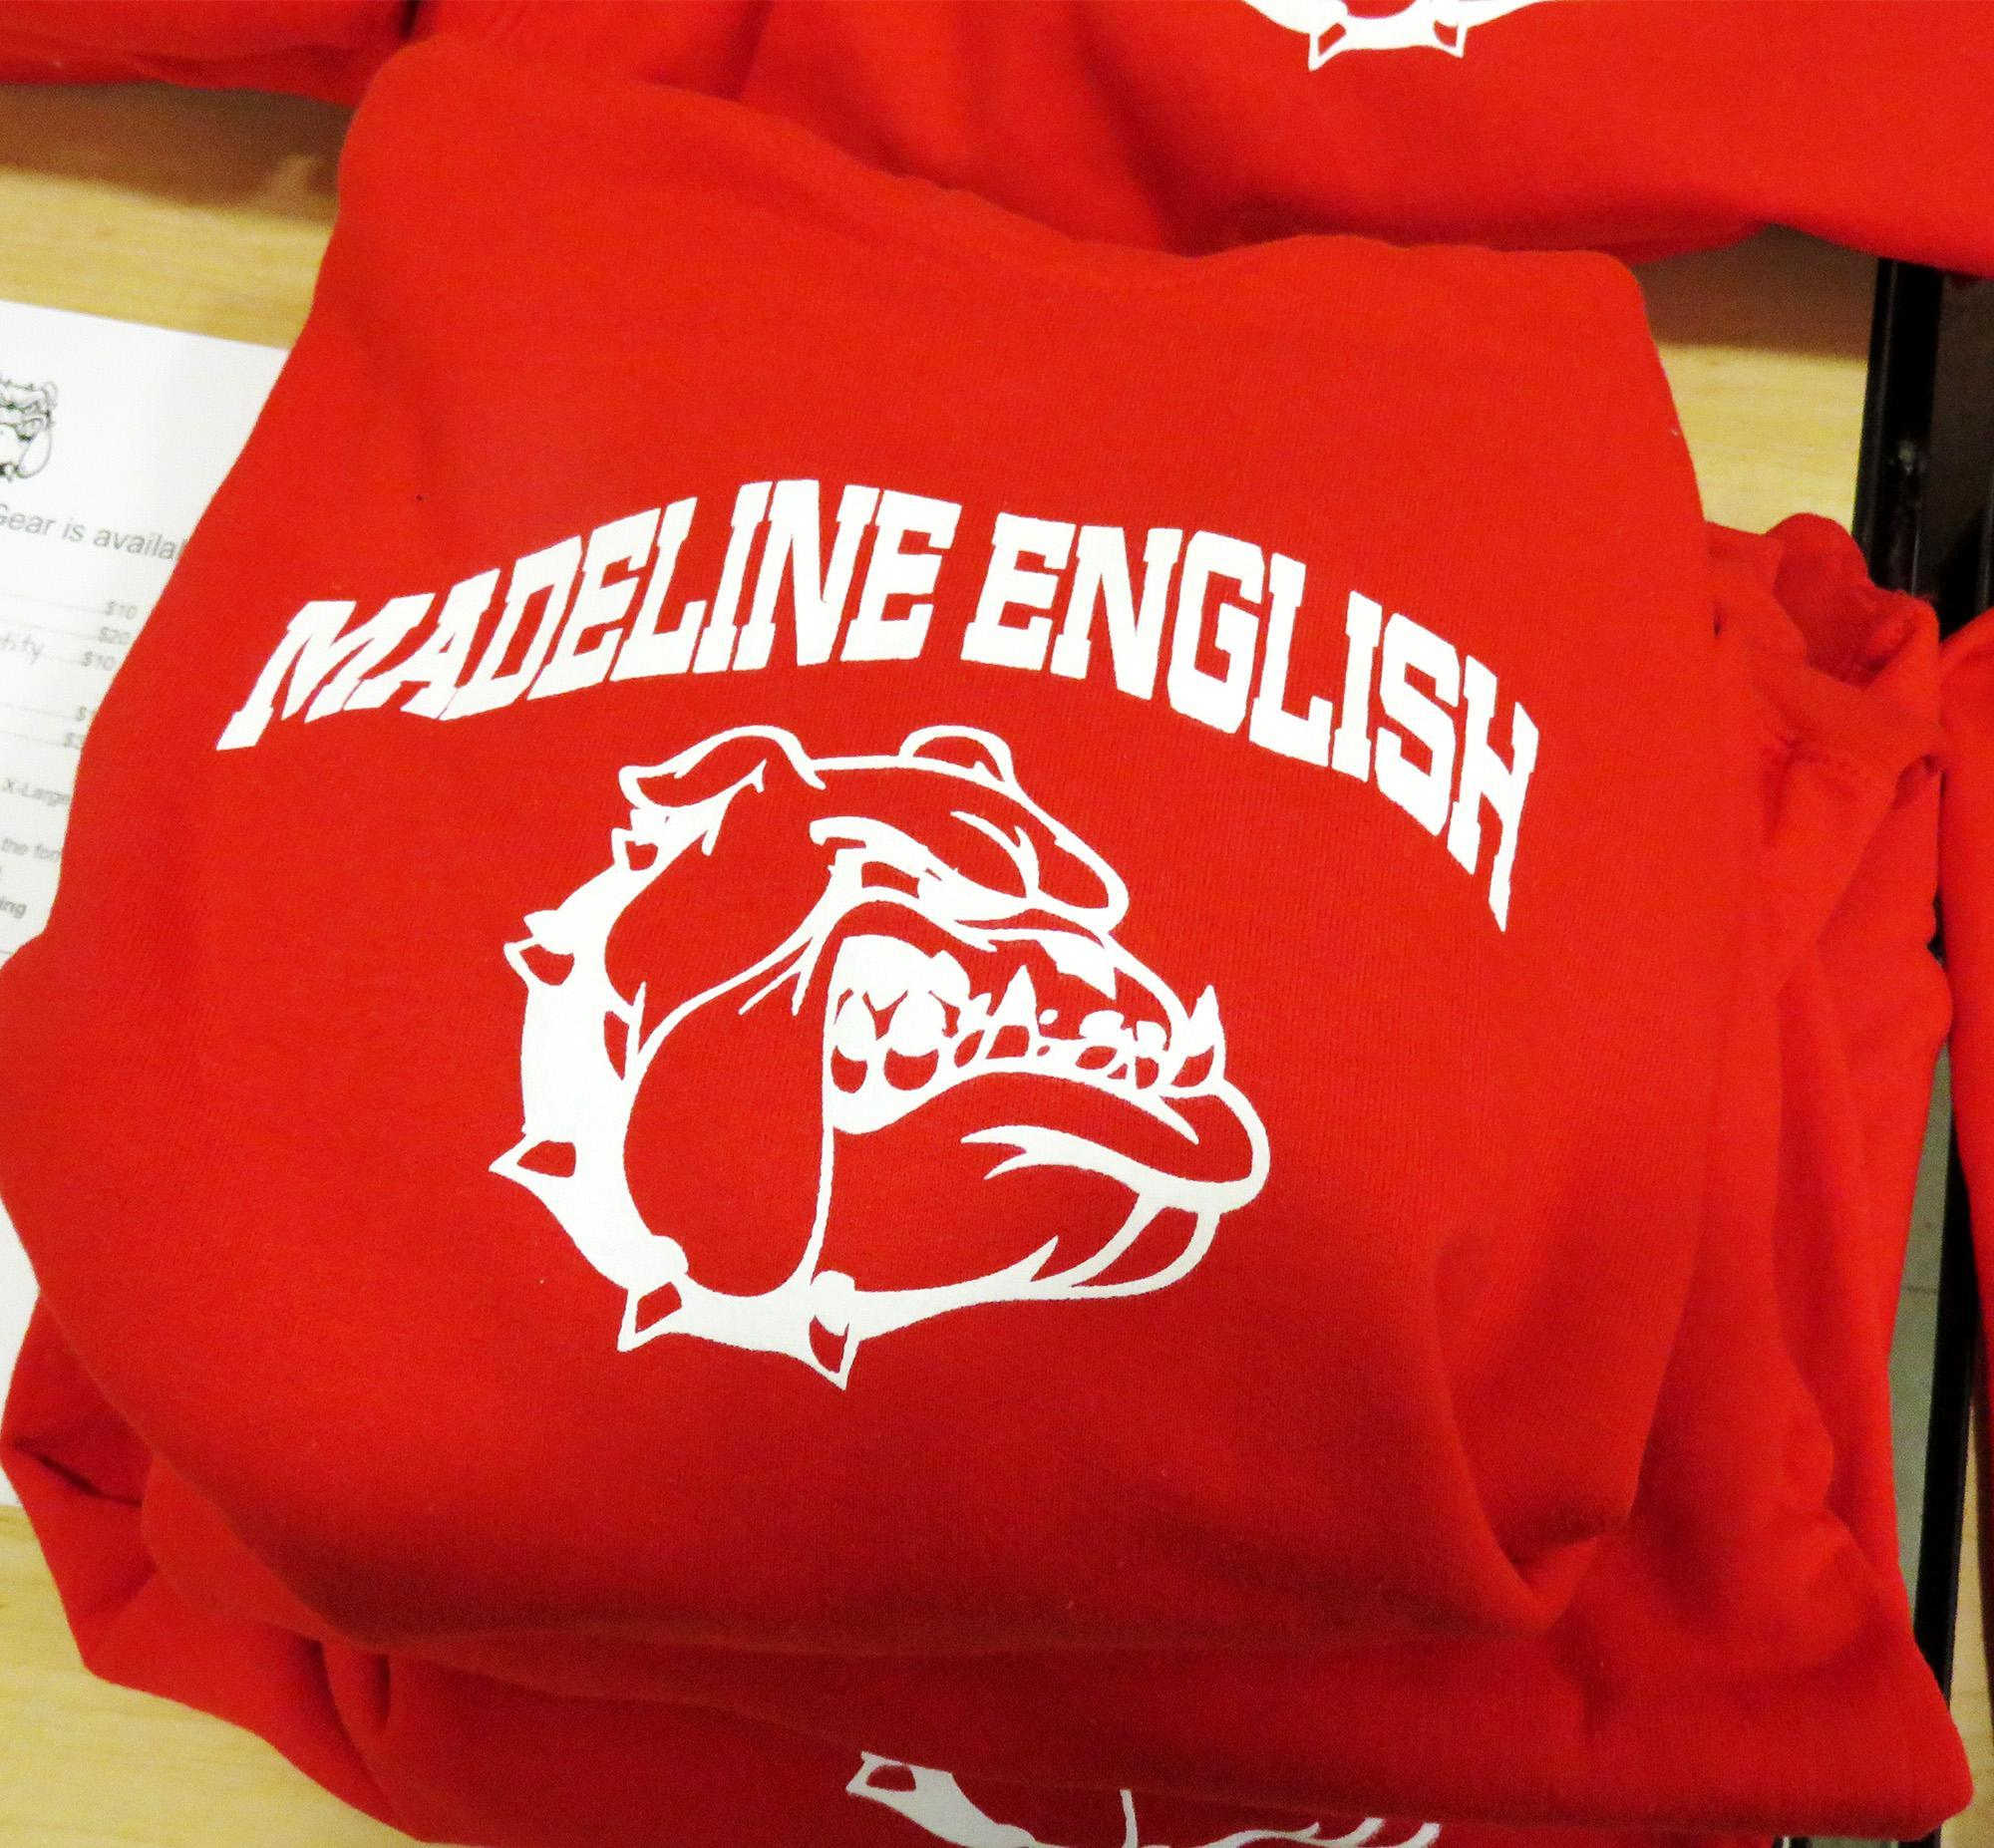 A red Madeline English sweatshirt with a cartoon face of a scowling bulldog